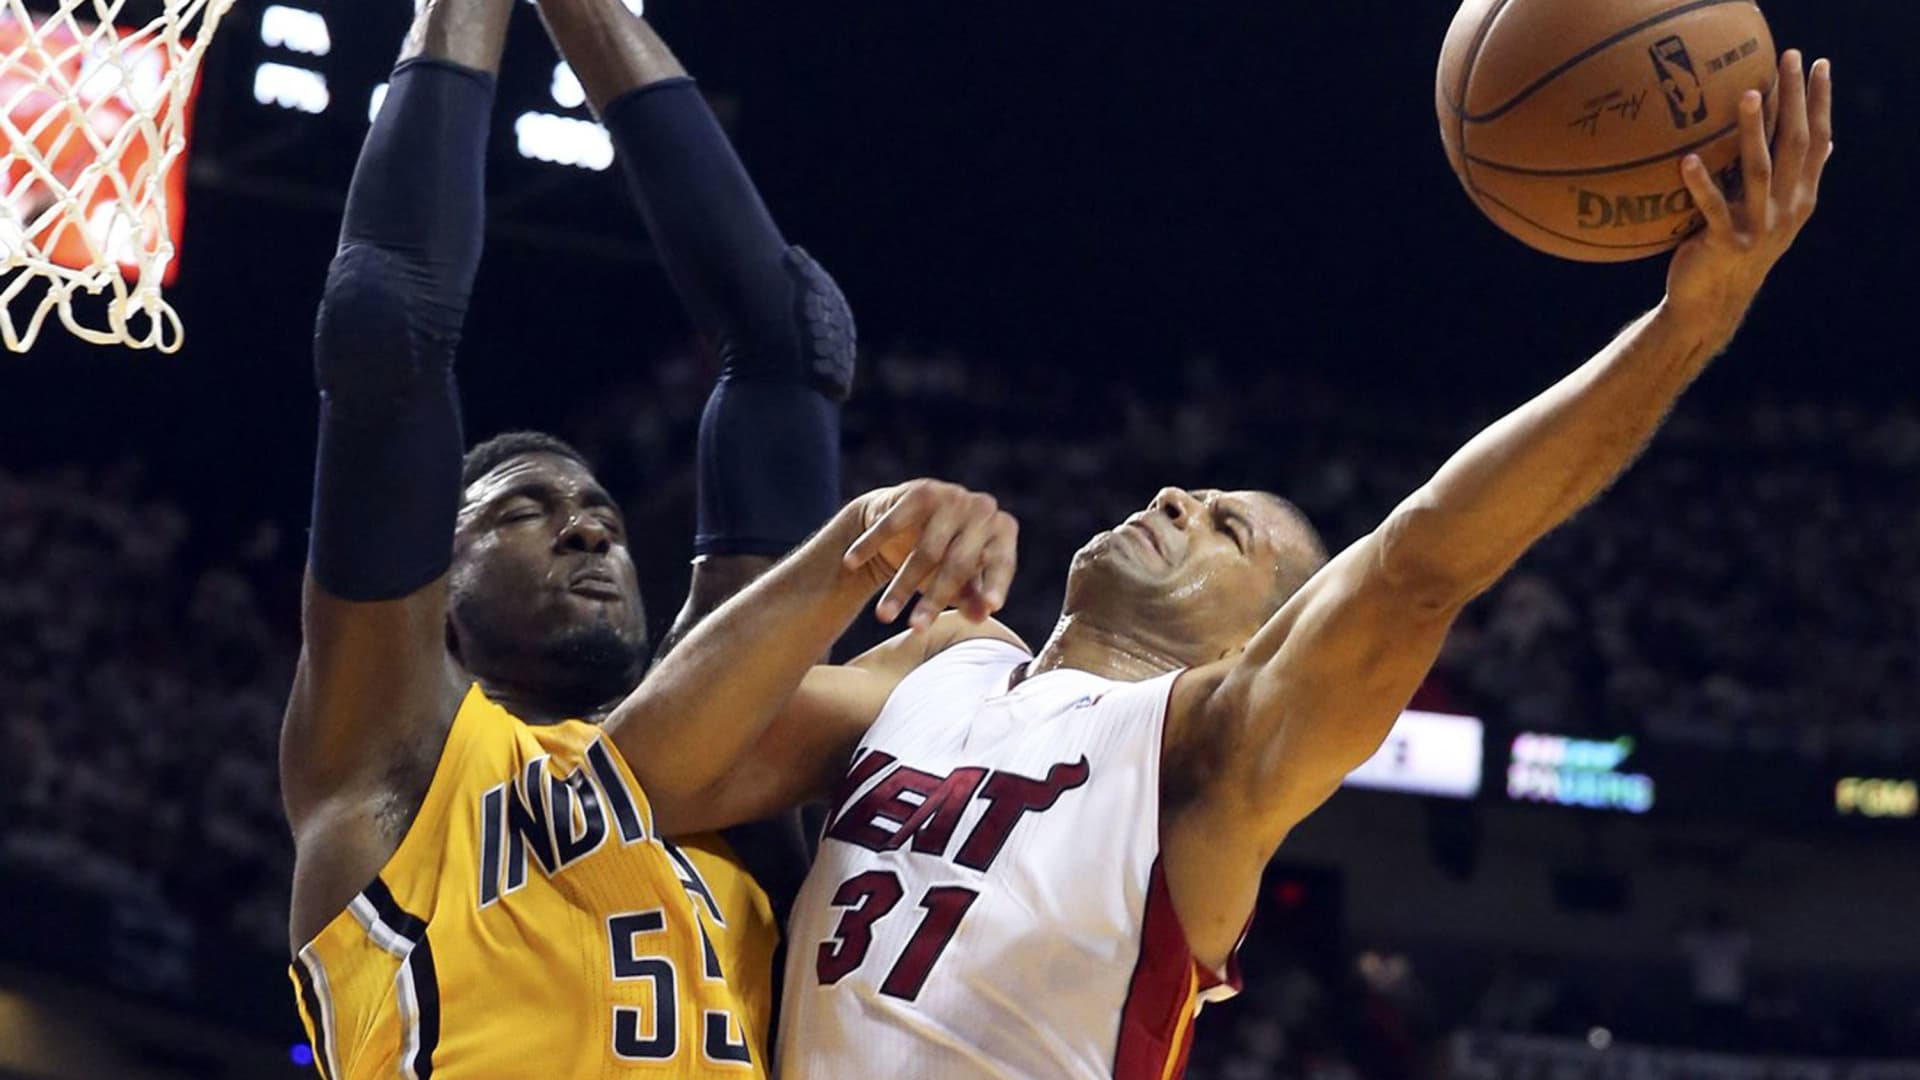 The Miami Heat's Shane Battier (31) can't get around the Indiana Pacers' Roy Hibbert at the basket in the first quarter in Game 3 of the Eastern Conference Finals at AmericanAirlines Arena in Miami on Saturday, May 24, 2014.